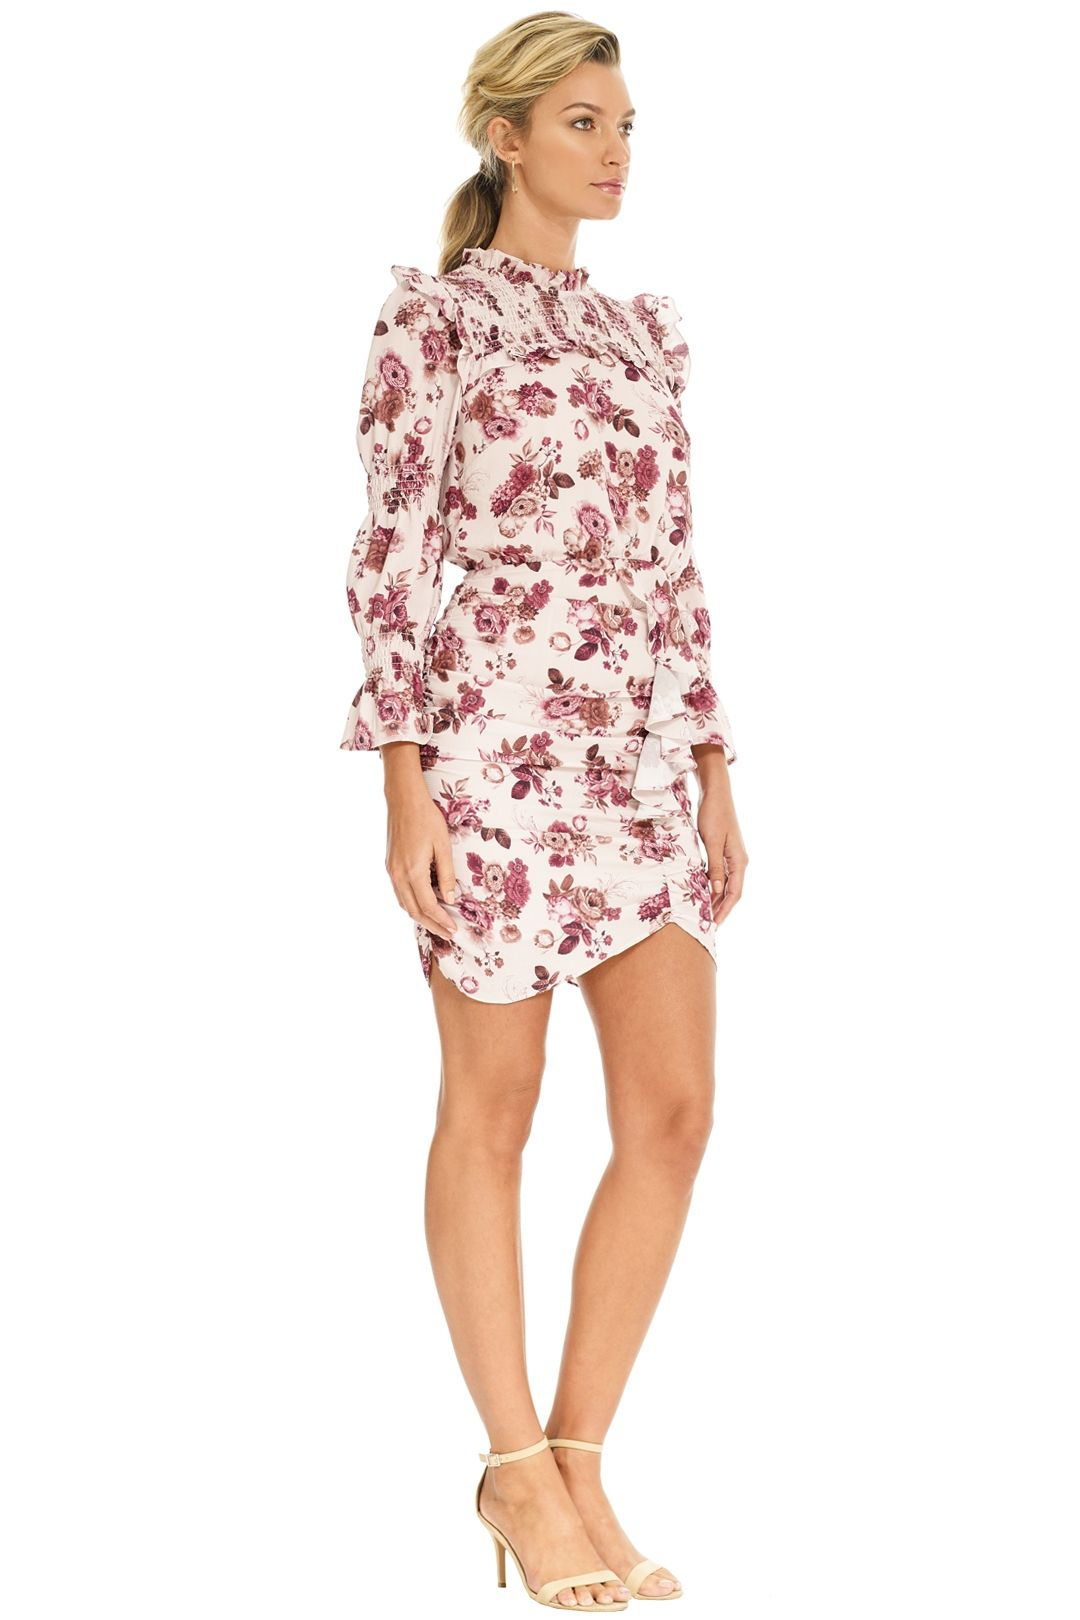 Pasduchas - Valencia Dress - Blush Floral - Side